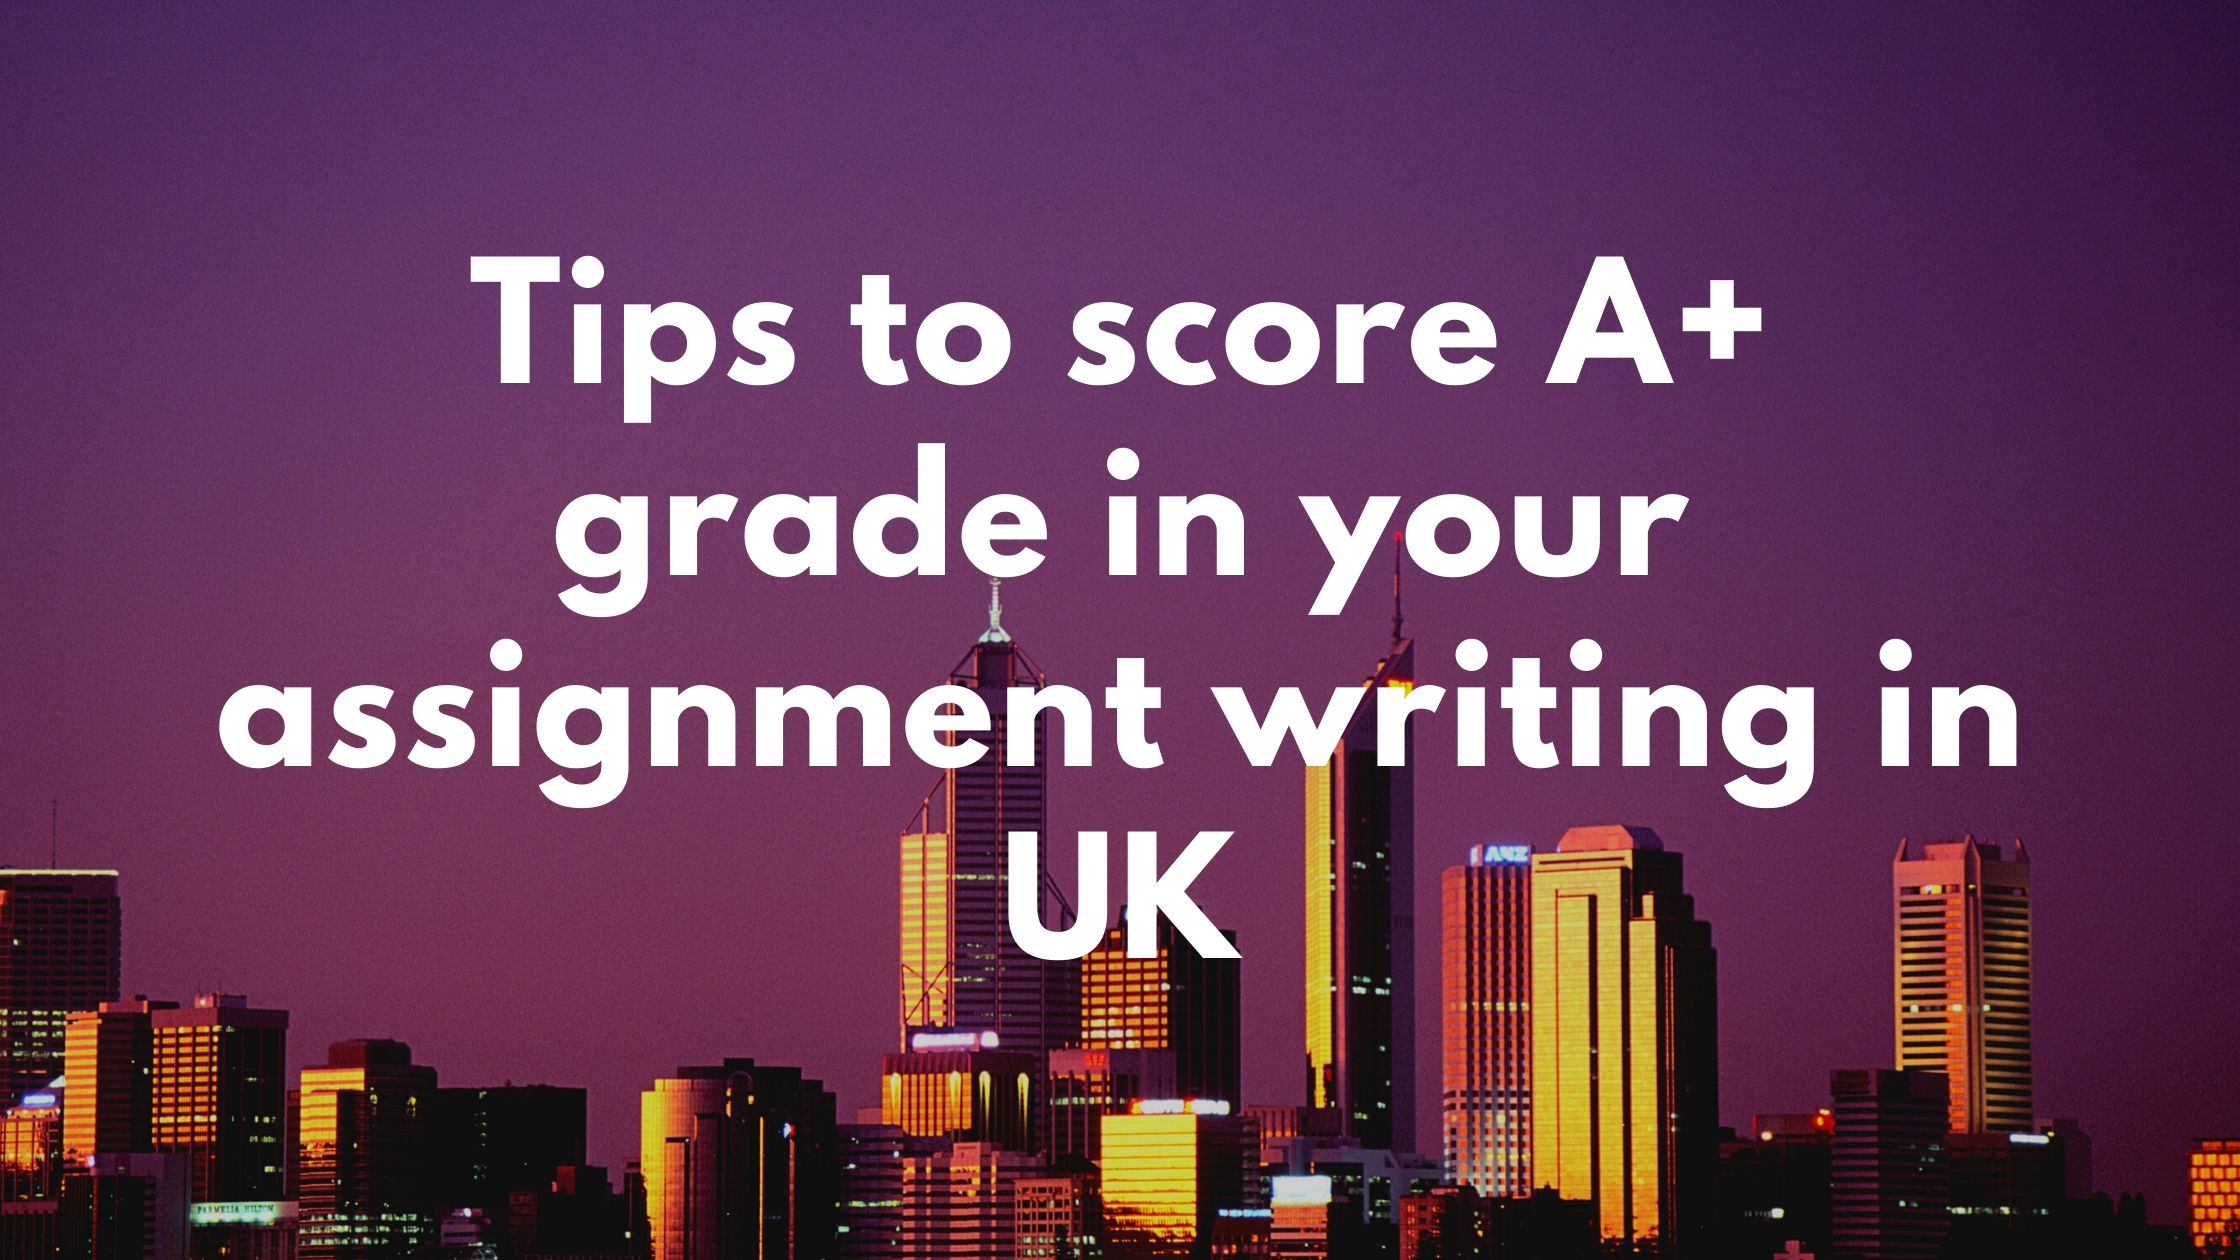 assignment writing in UK